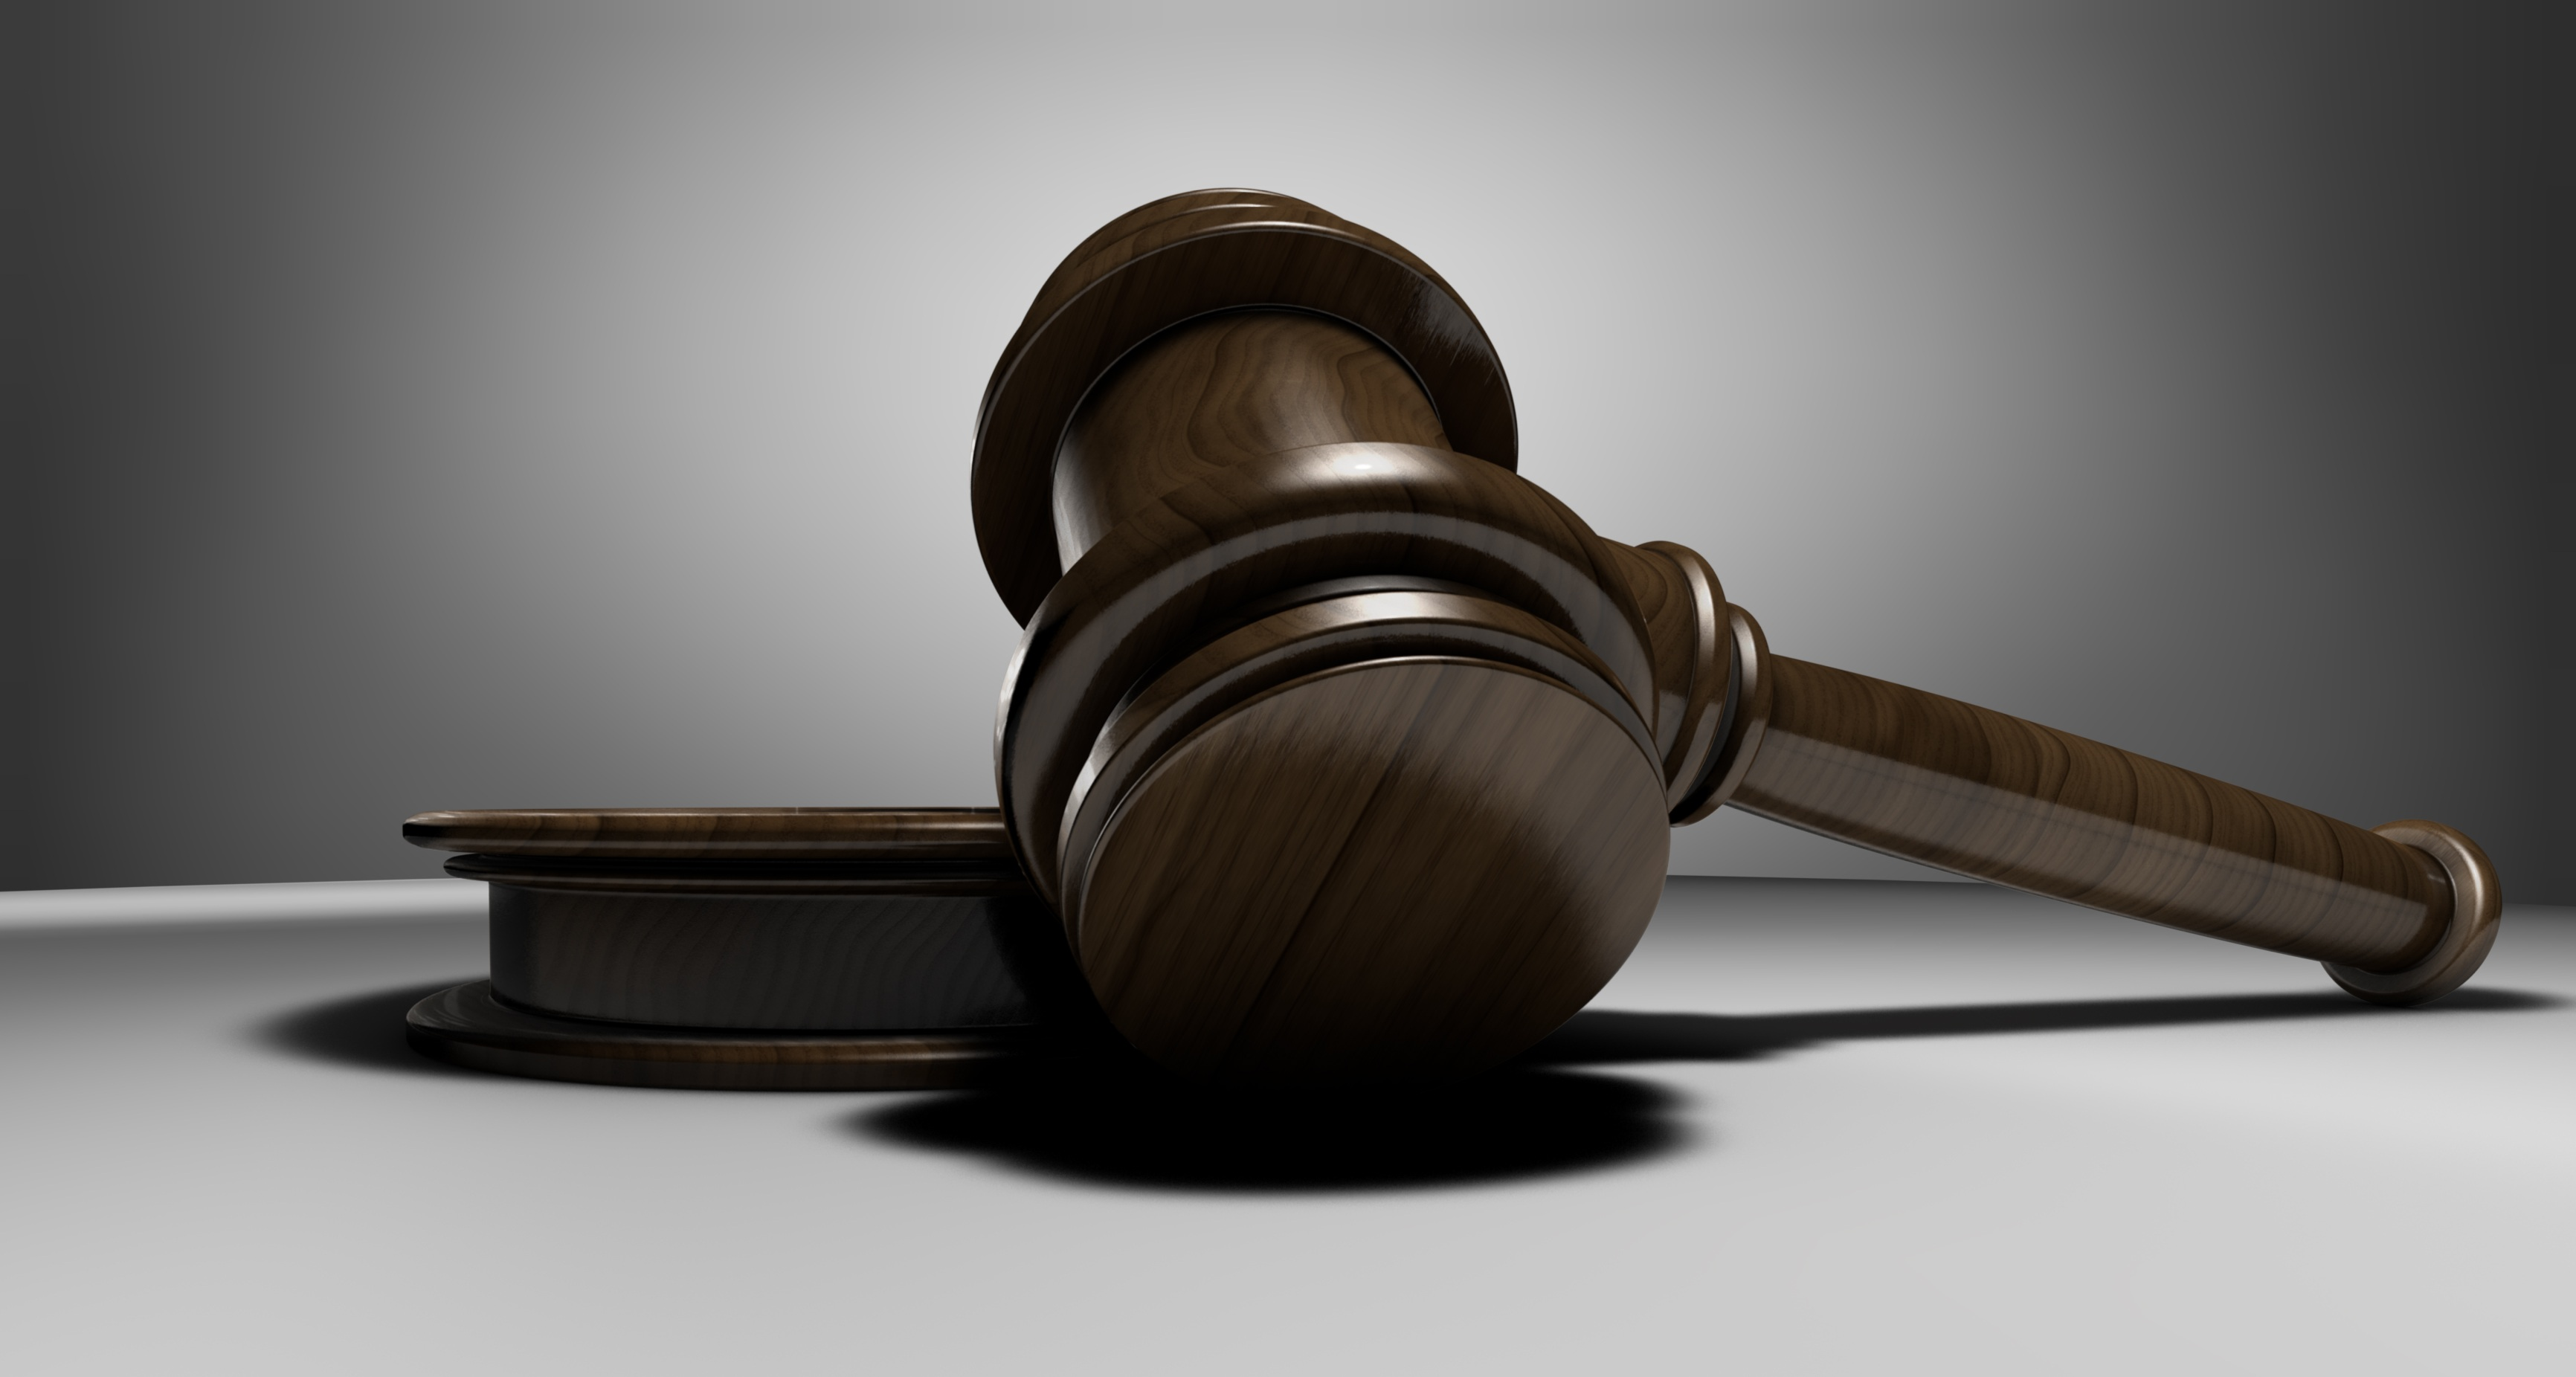 Is Waldrup V Countrywide Settlement a Scam?